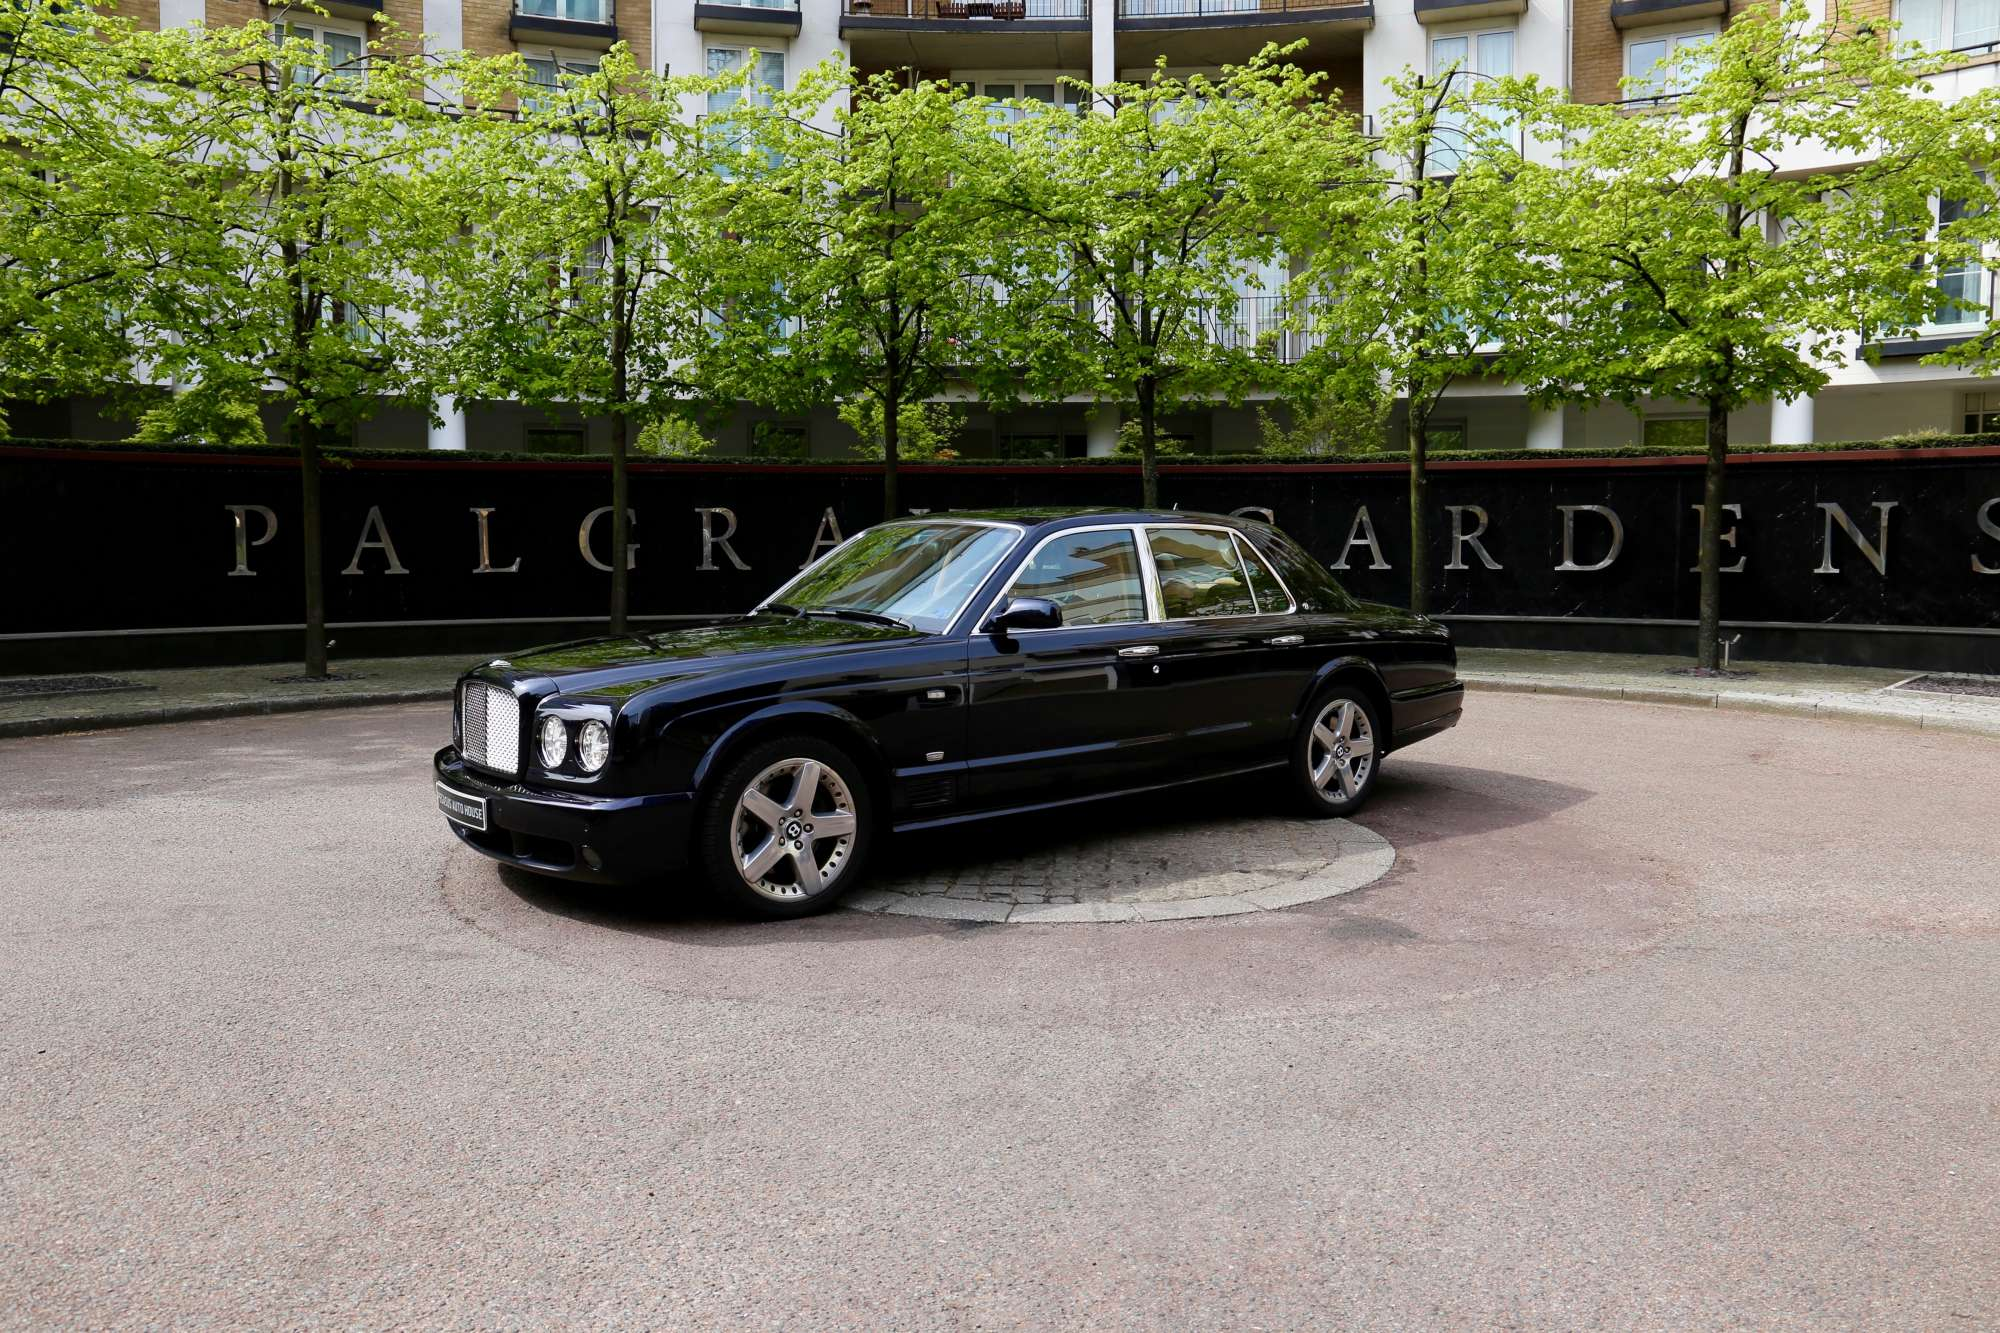 c vienna l near sale va bentley arnage used t stock for htm